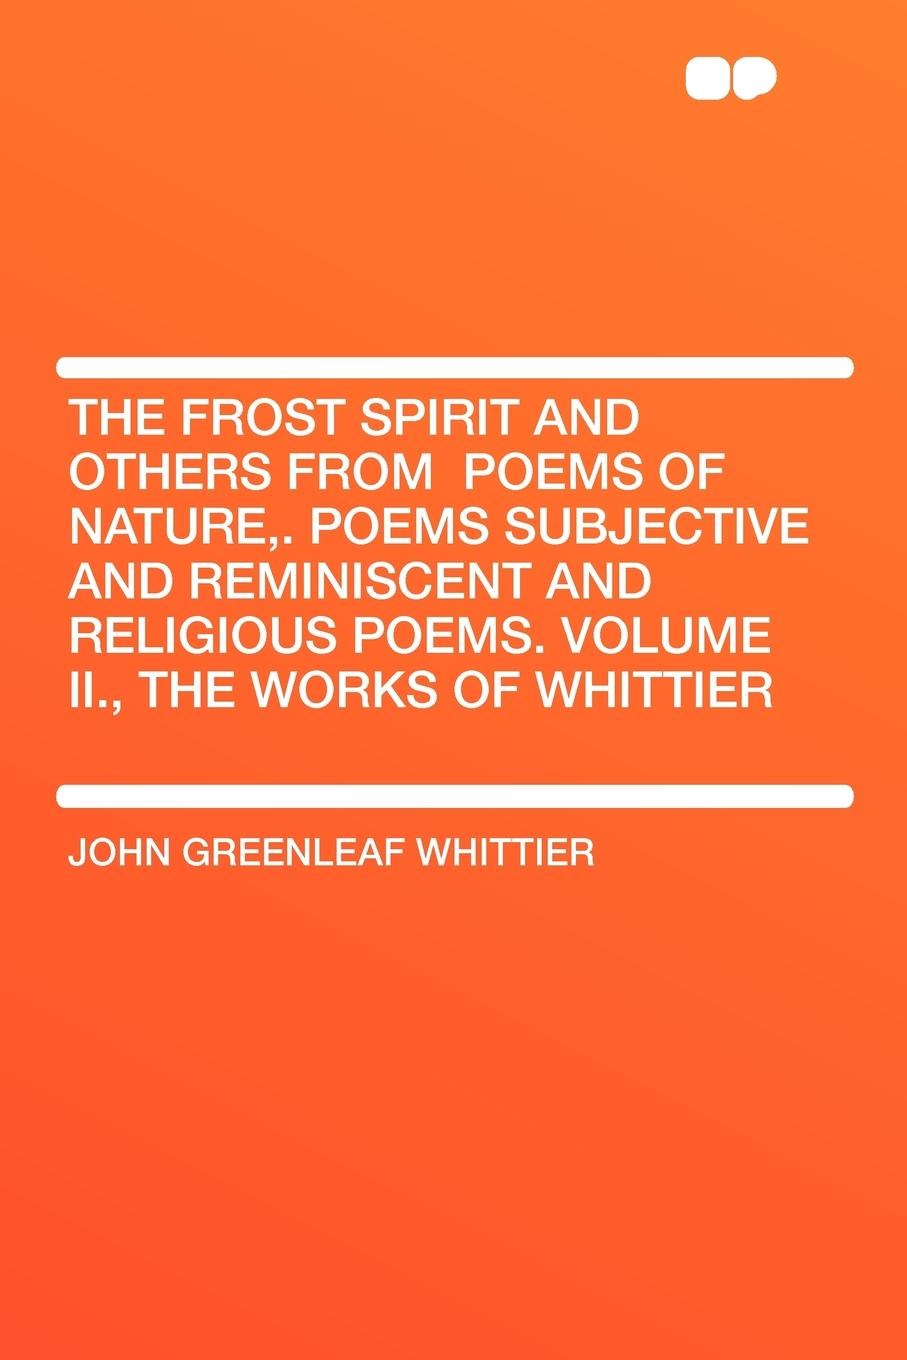 John Greenleaf Whittier The Frost Spirit and Others from .Poems of Nature,. Poems Subjective and Reminiscent and Religious Poems. Volume II., the Works of Whittier robert frost the road not taken birches and other poems